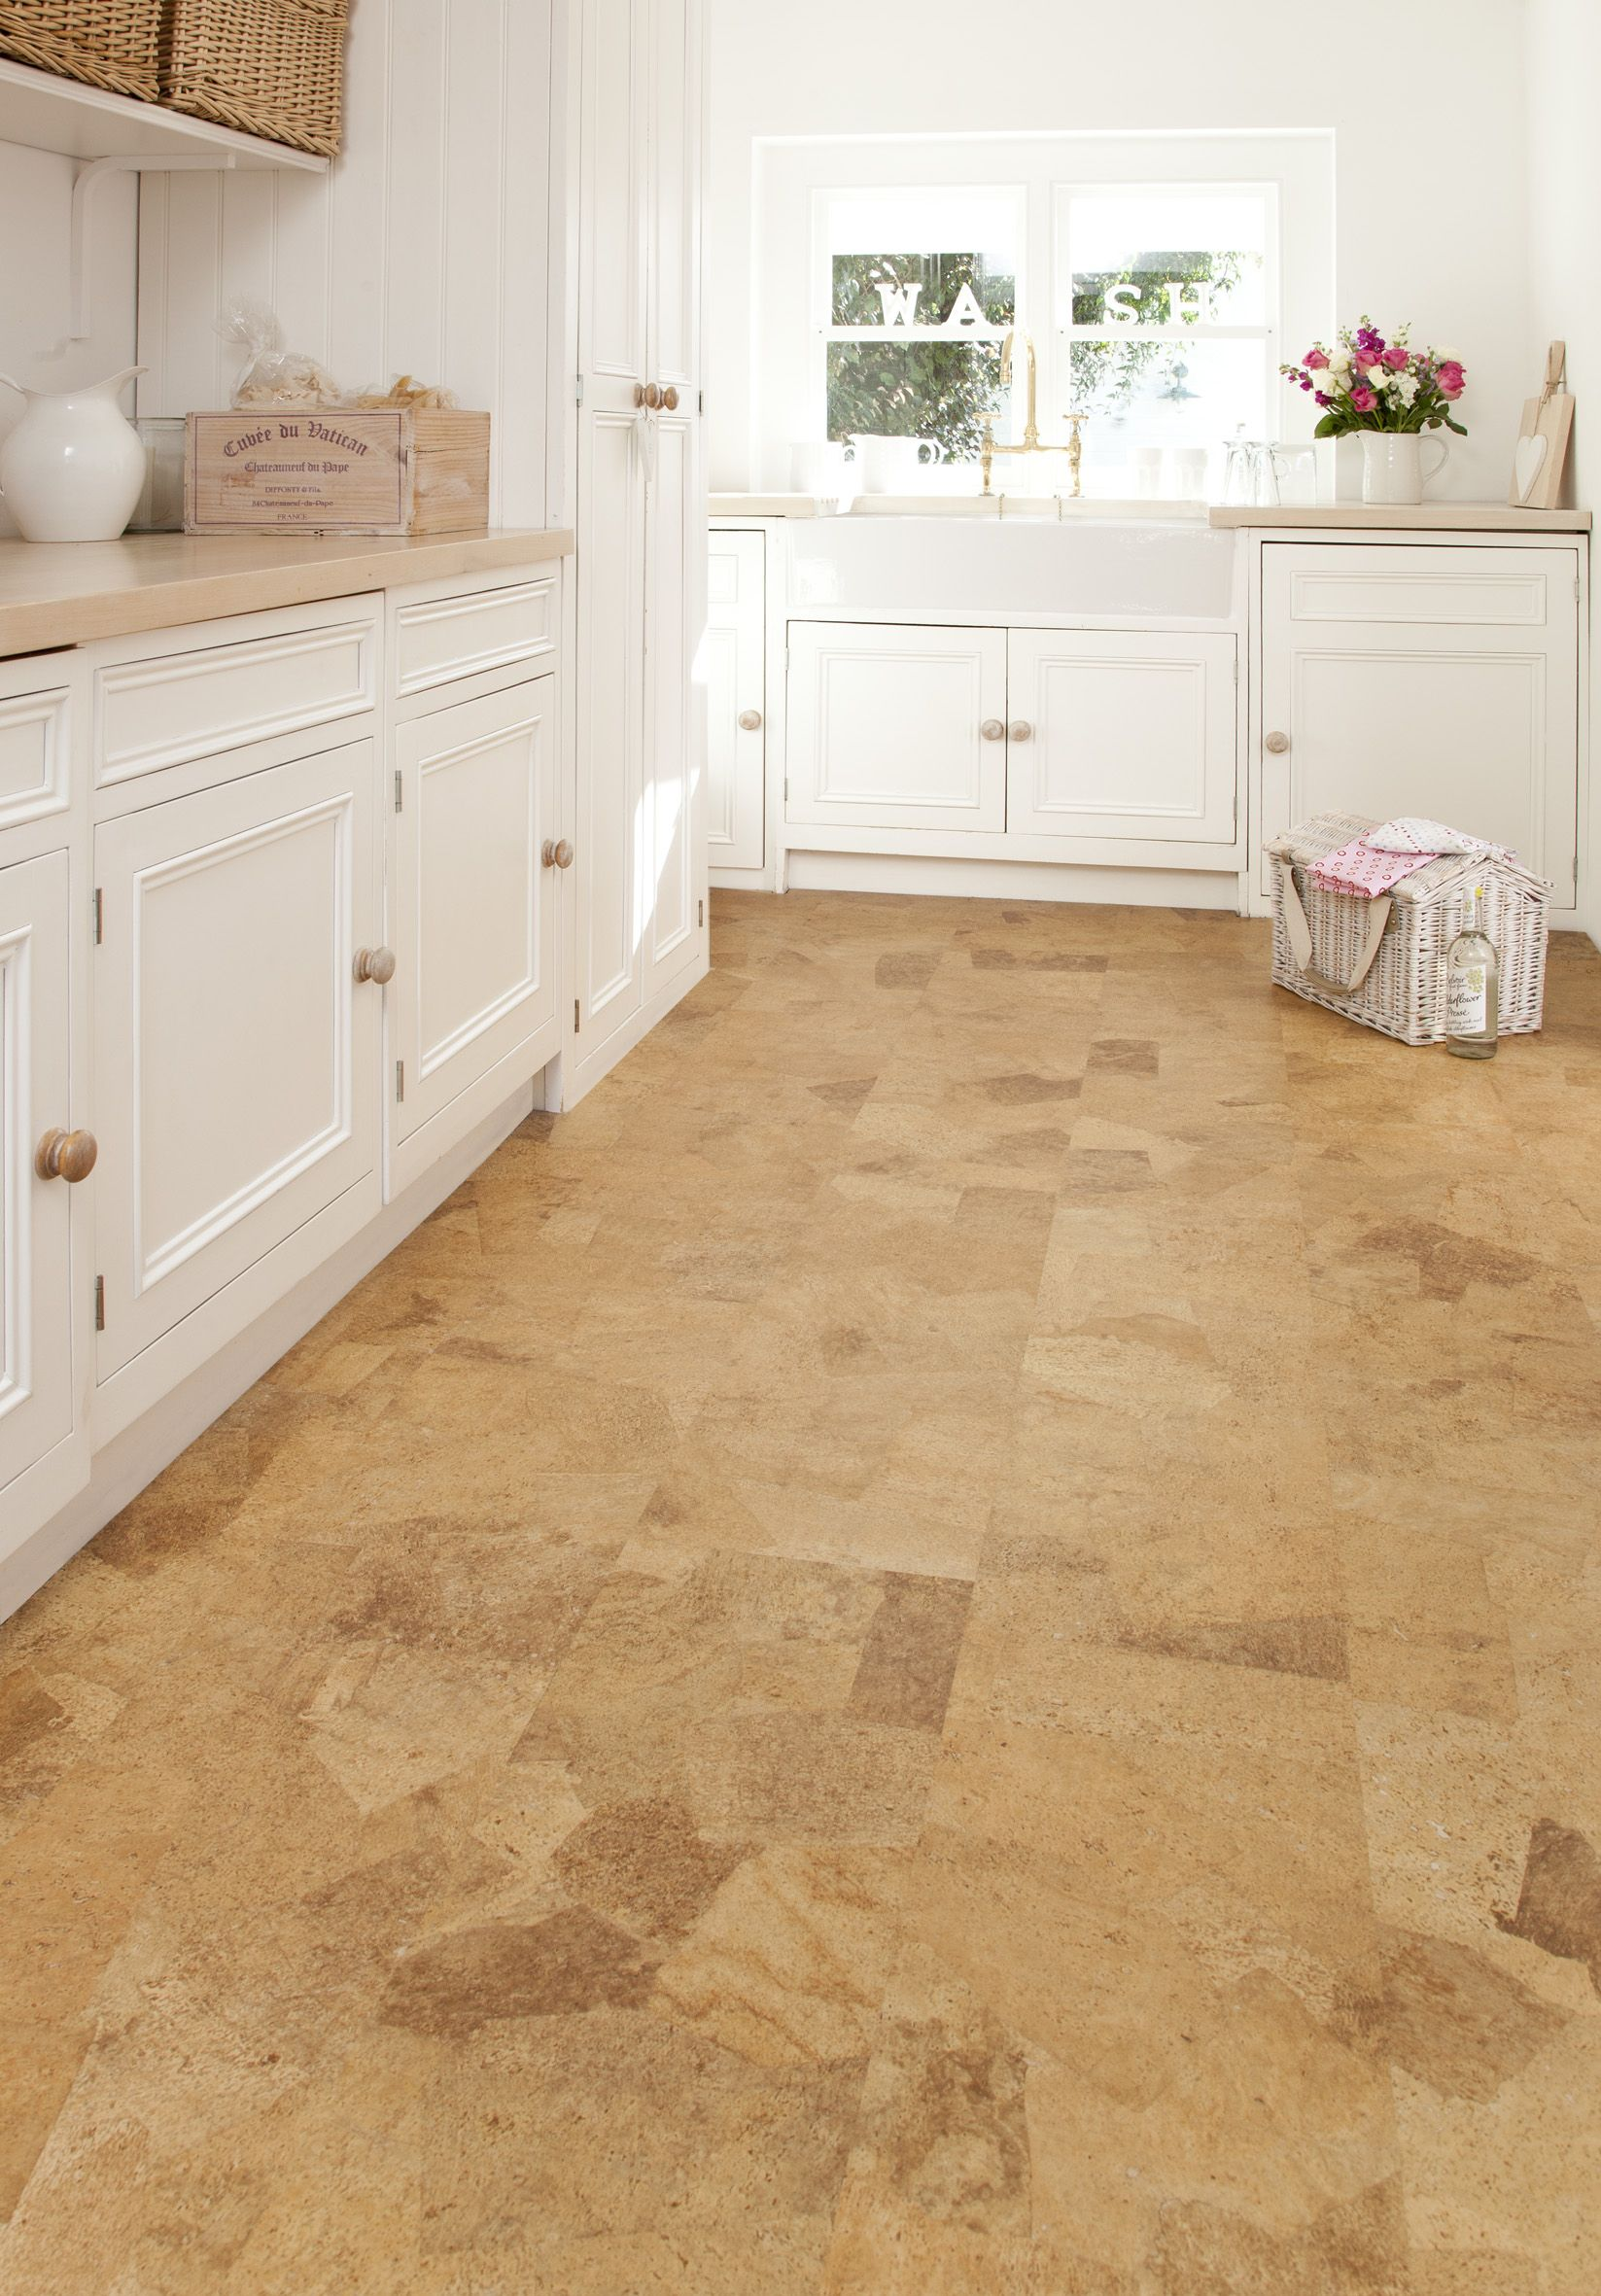 30 floor tile designs for every corner of your home cork floor kitchen dailygadgetfo Image collections